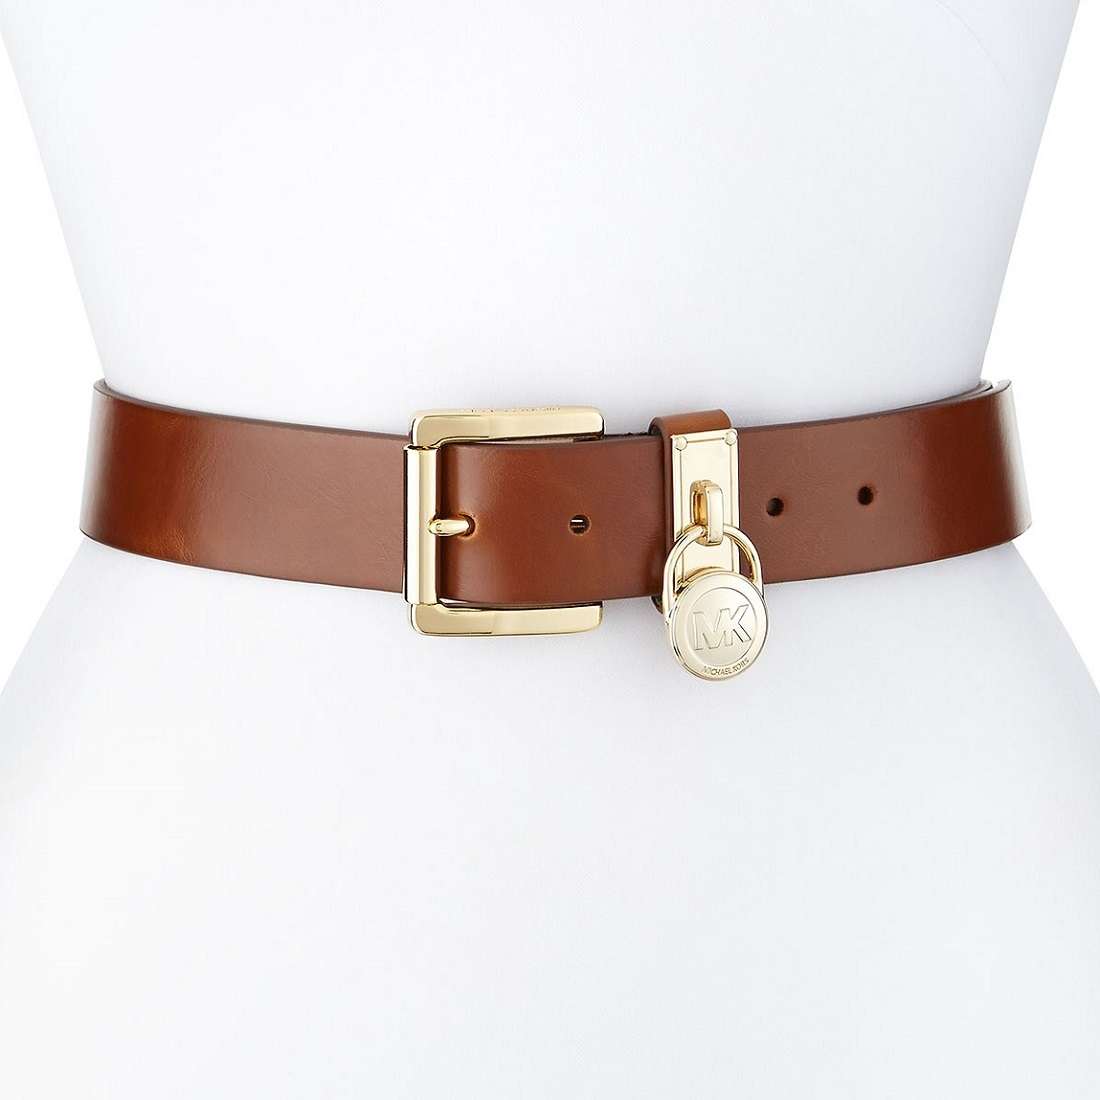 Picture Of Michael Kors Logo Lock Charm Leather Belt Gold